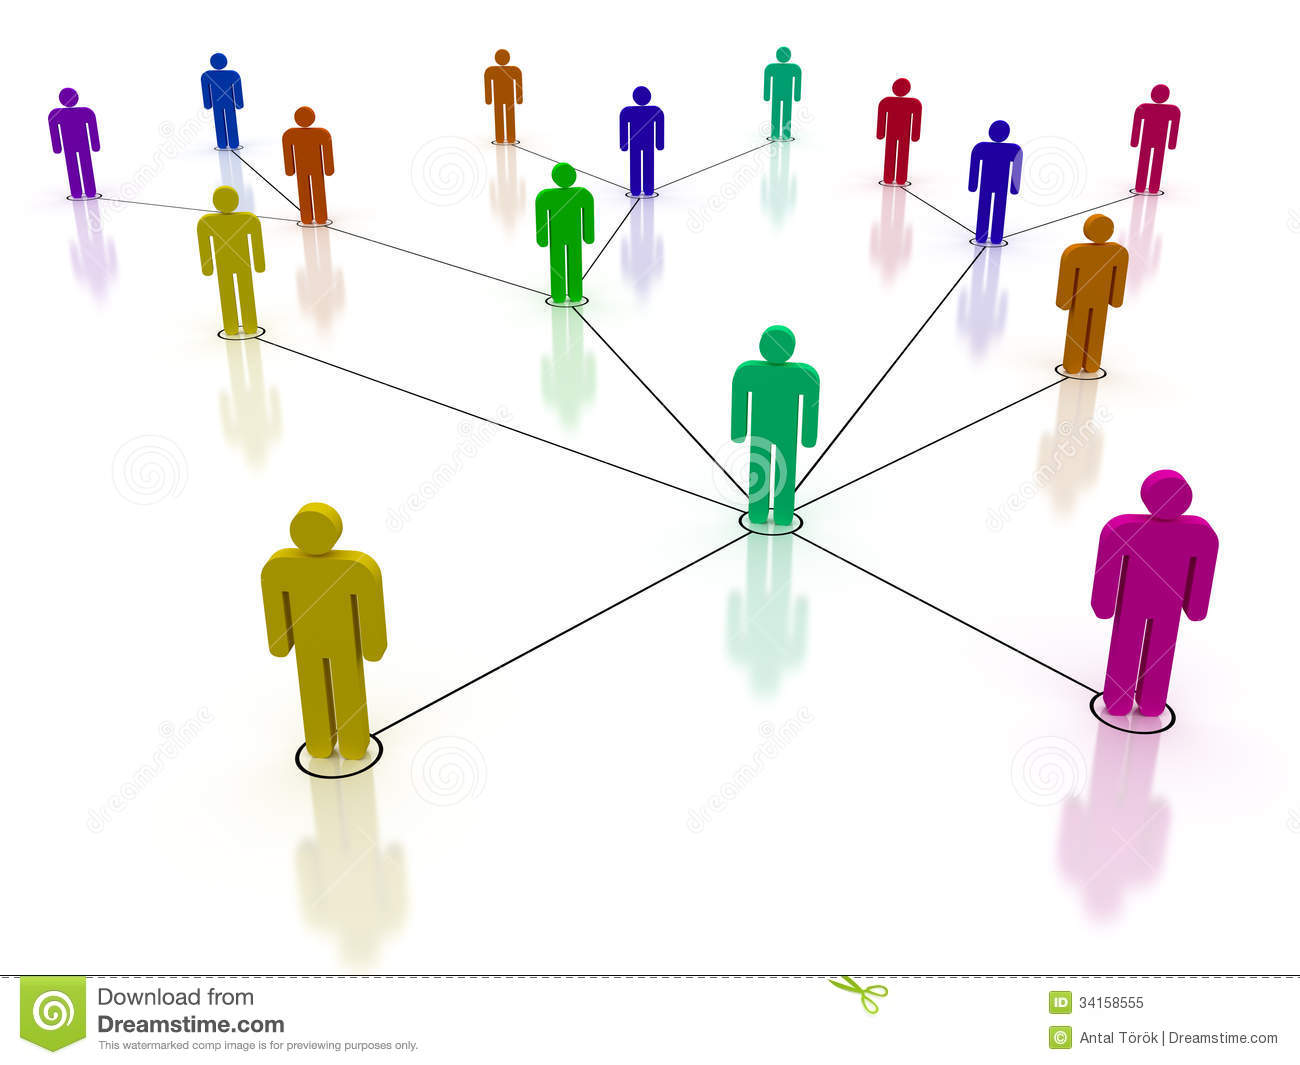 Concept image representing network, networking, connection, social ...